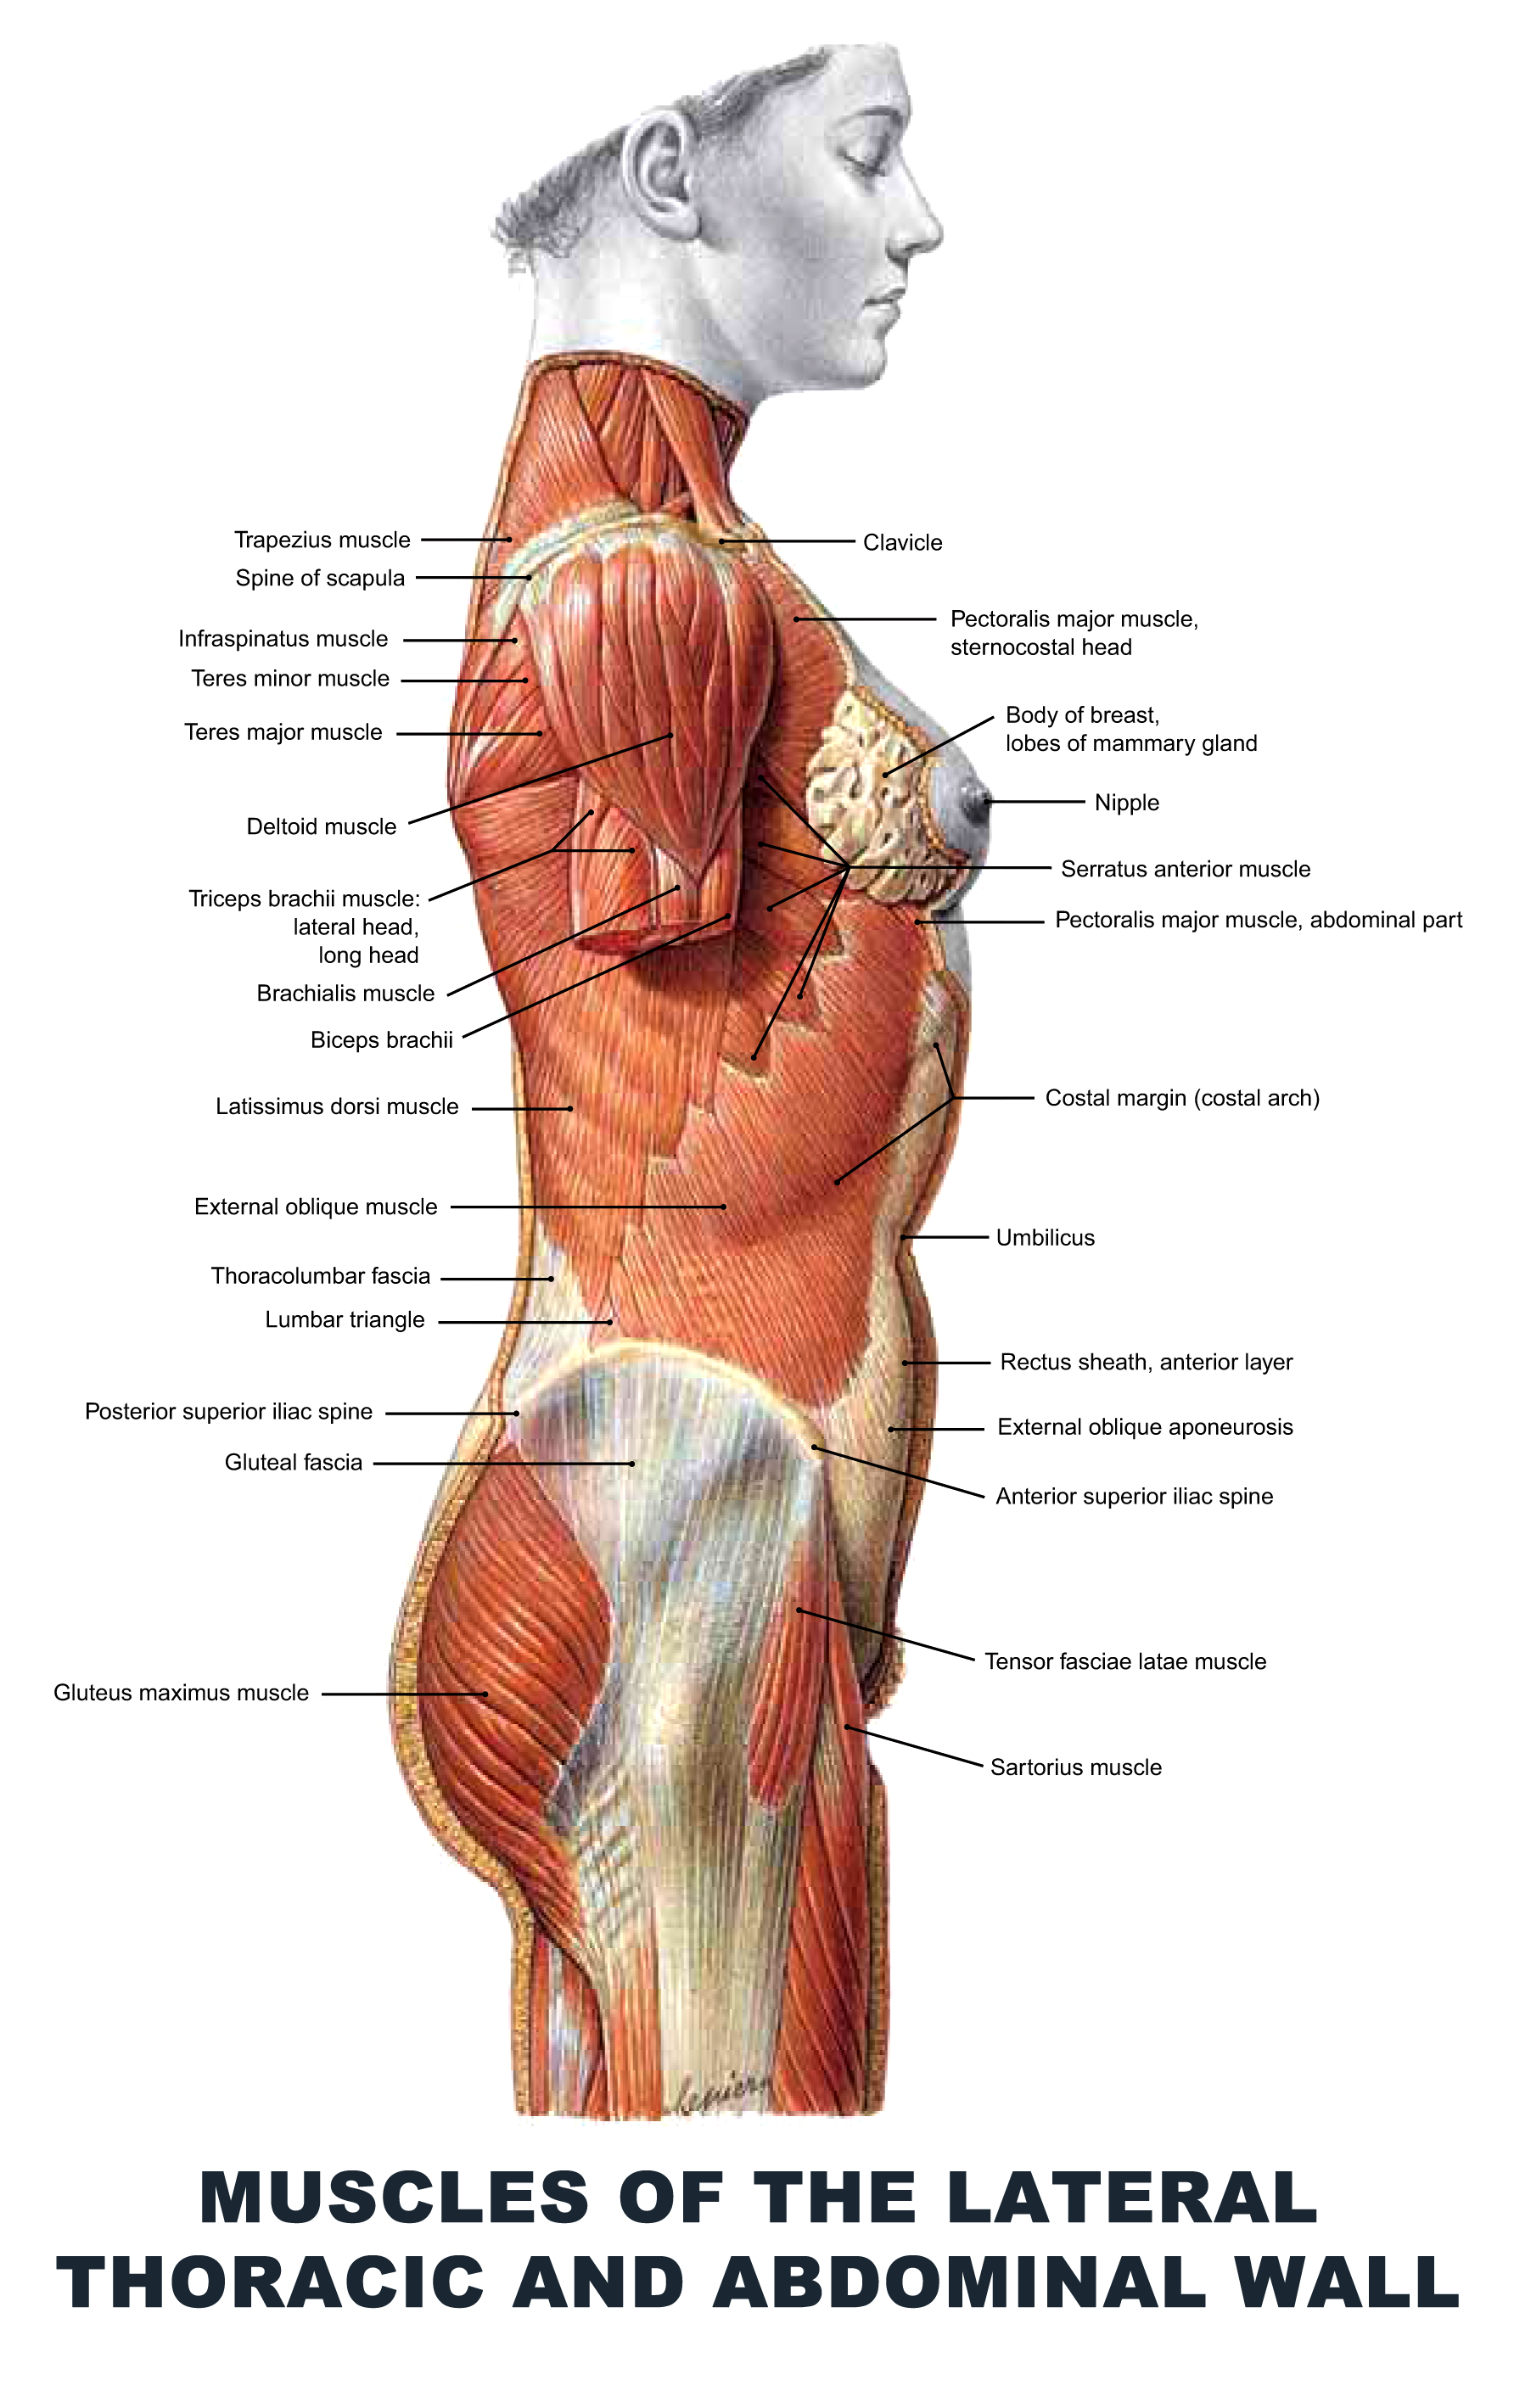 Muscles of the Lateral Thoracic and Abdominal Wall - #anatomy images ...